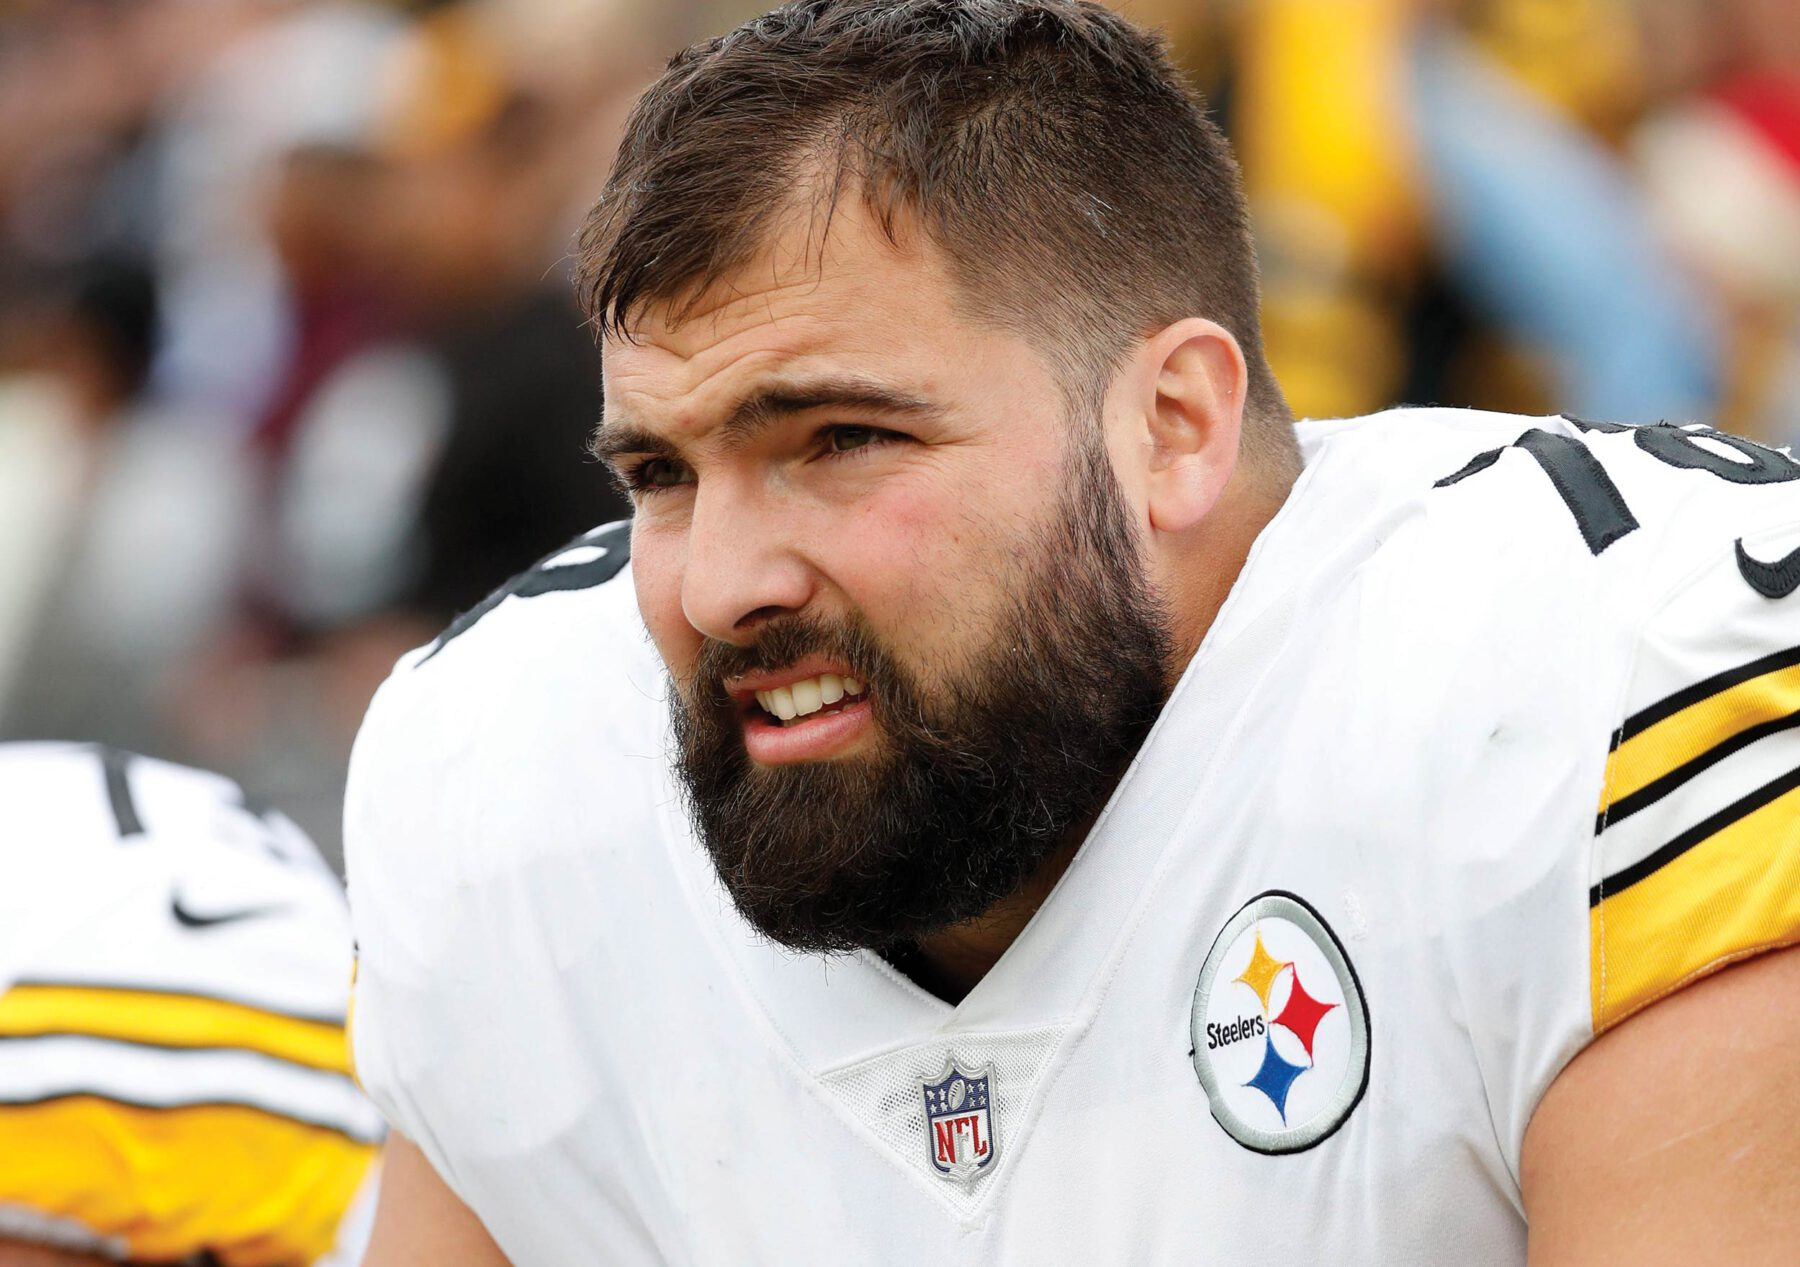 Postindustrial, Alejandro Villanueva would like to discuss geopolitics. by Carmen Gentile Photo Greg Trott via Associated Press